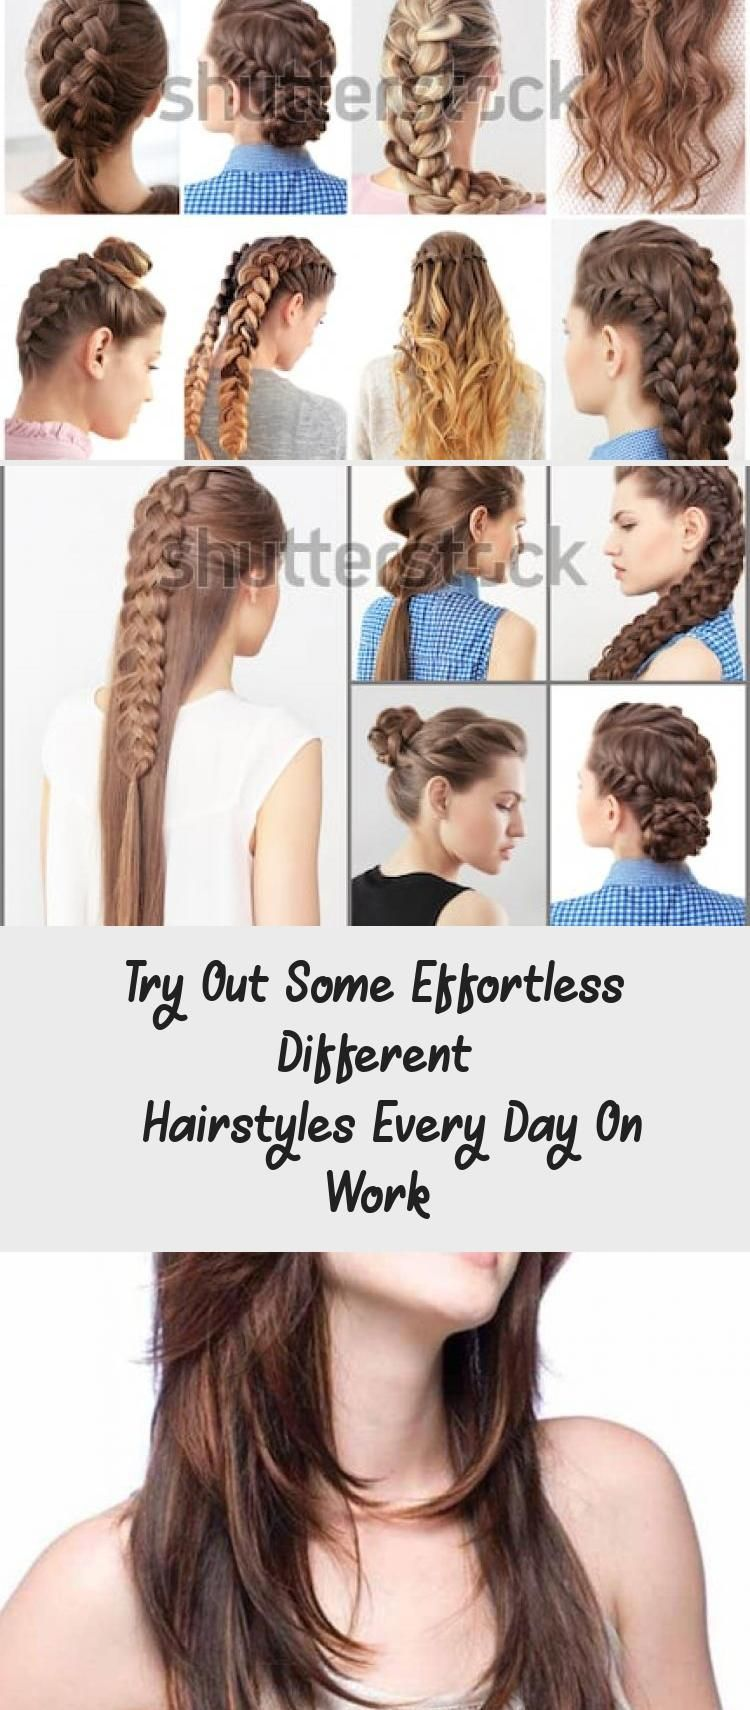 Try Out Some Effortless Different Hairstyles Every Day On Work 7 Easy Everyday Hairstyles For Each D In 2020 Hair Styles Easy Everyday Hairstyles Everyday Hairstyles